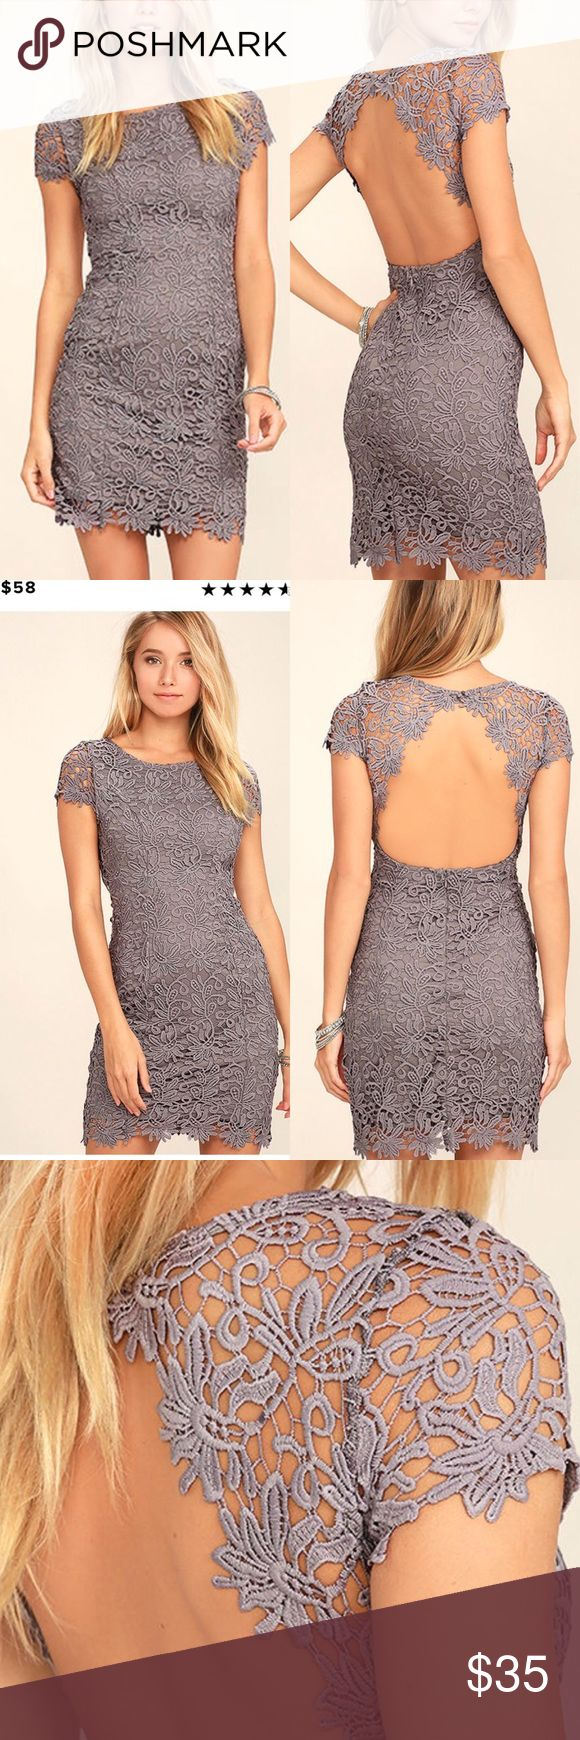 Backless Lace dress We admire any girl who can put together a great outfit, but honestly, the Hidden Talent Backless Grey Lace Dress makes it easy! This beautiful bodycon dress has sheer cap sleeves and a backless design (with top button). Hidden back zipper/hook clasp. Note: this dress is a beautiful grey/Lavender that's much more beautiful in person - they Lavender hue is subtle.  Lined. 100% Polyester. Hand Wash Cold. Imported. Dresses